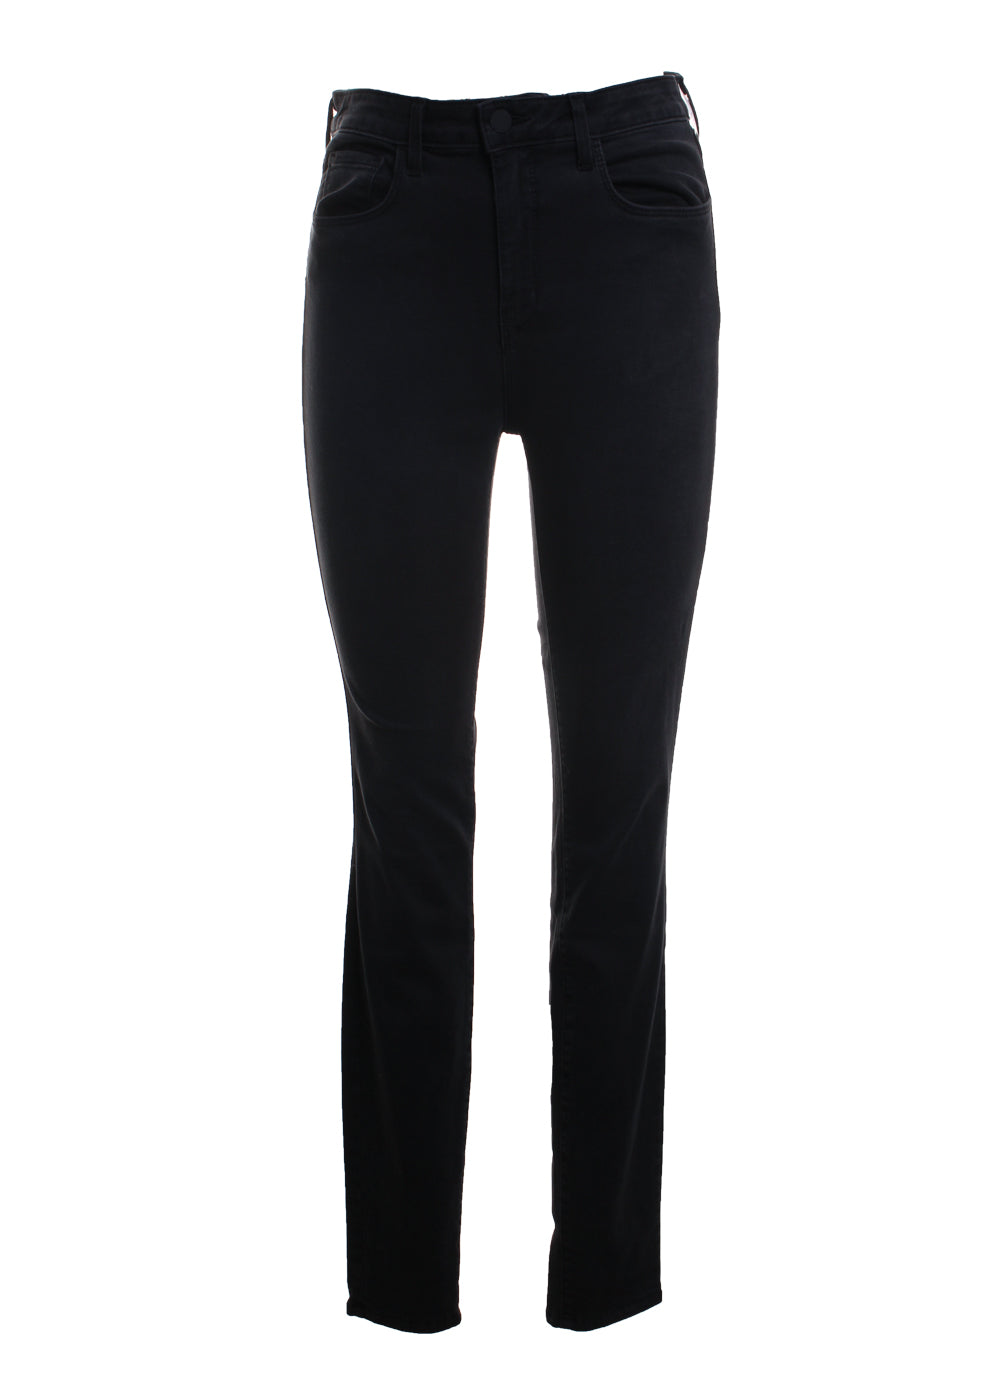 Marguerite Cotton High Rise Skinny Jeans